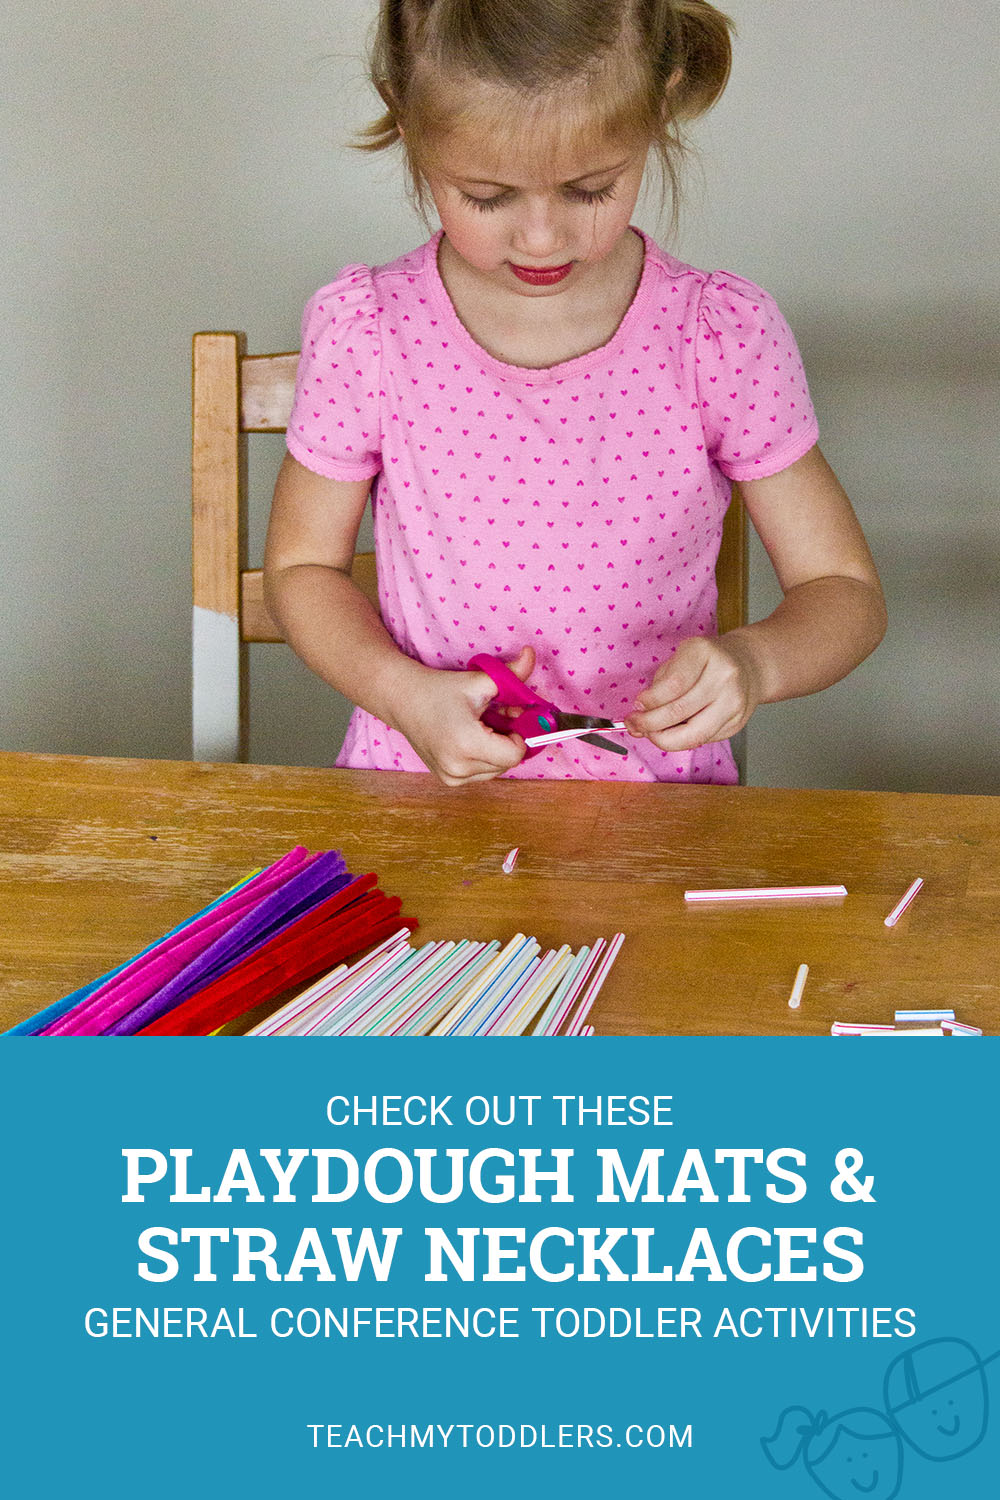 Check out these playdough mats and straw necklaces for general conference toddler activities